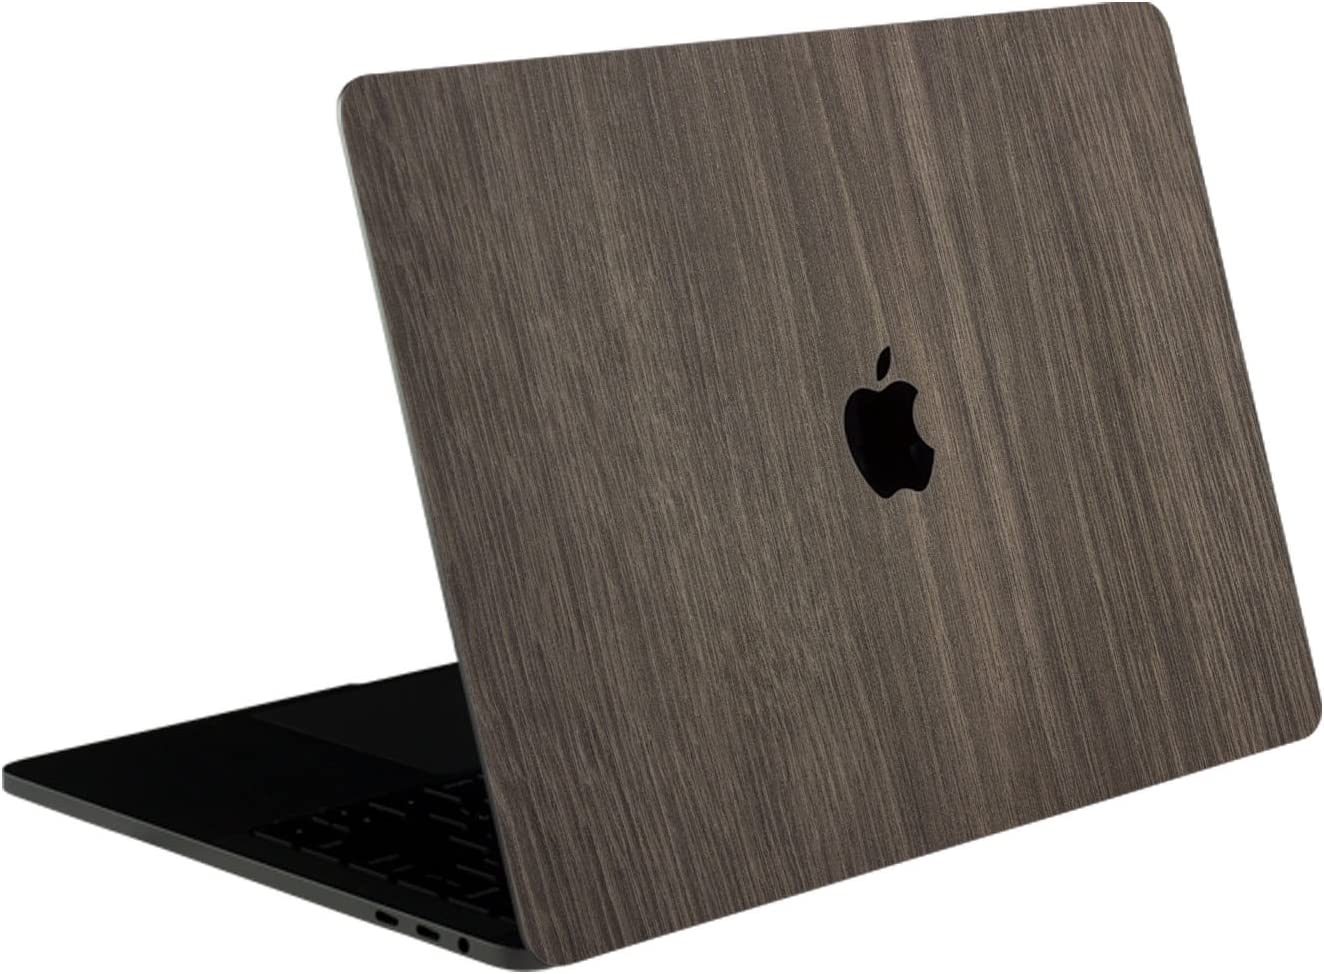 SOJITEK Brown Wood Texture 4-in-1, Full-Size 360° Protector Skin Decals Sticker MacBook Pro 15 Inch (2016 to 2019 Model with & w/o Touch Bar & ID) A1707 A1900 Black Keyboard Cover